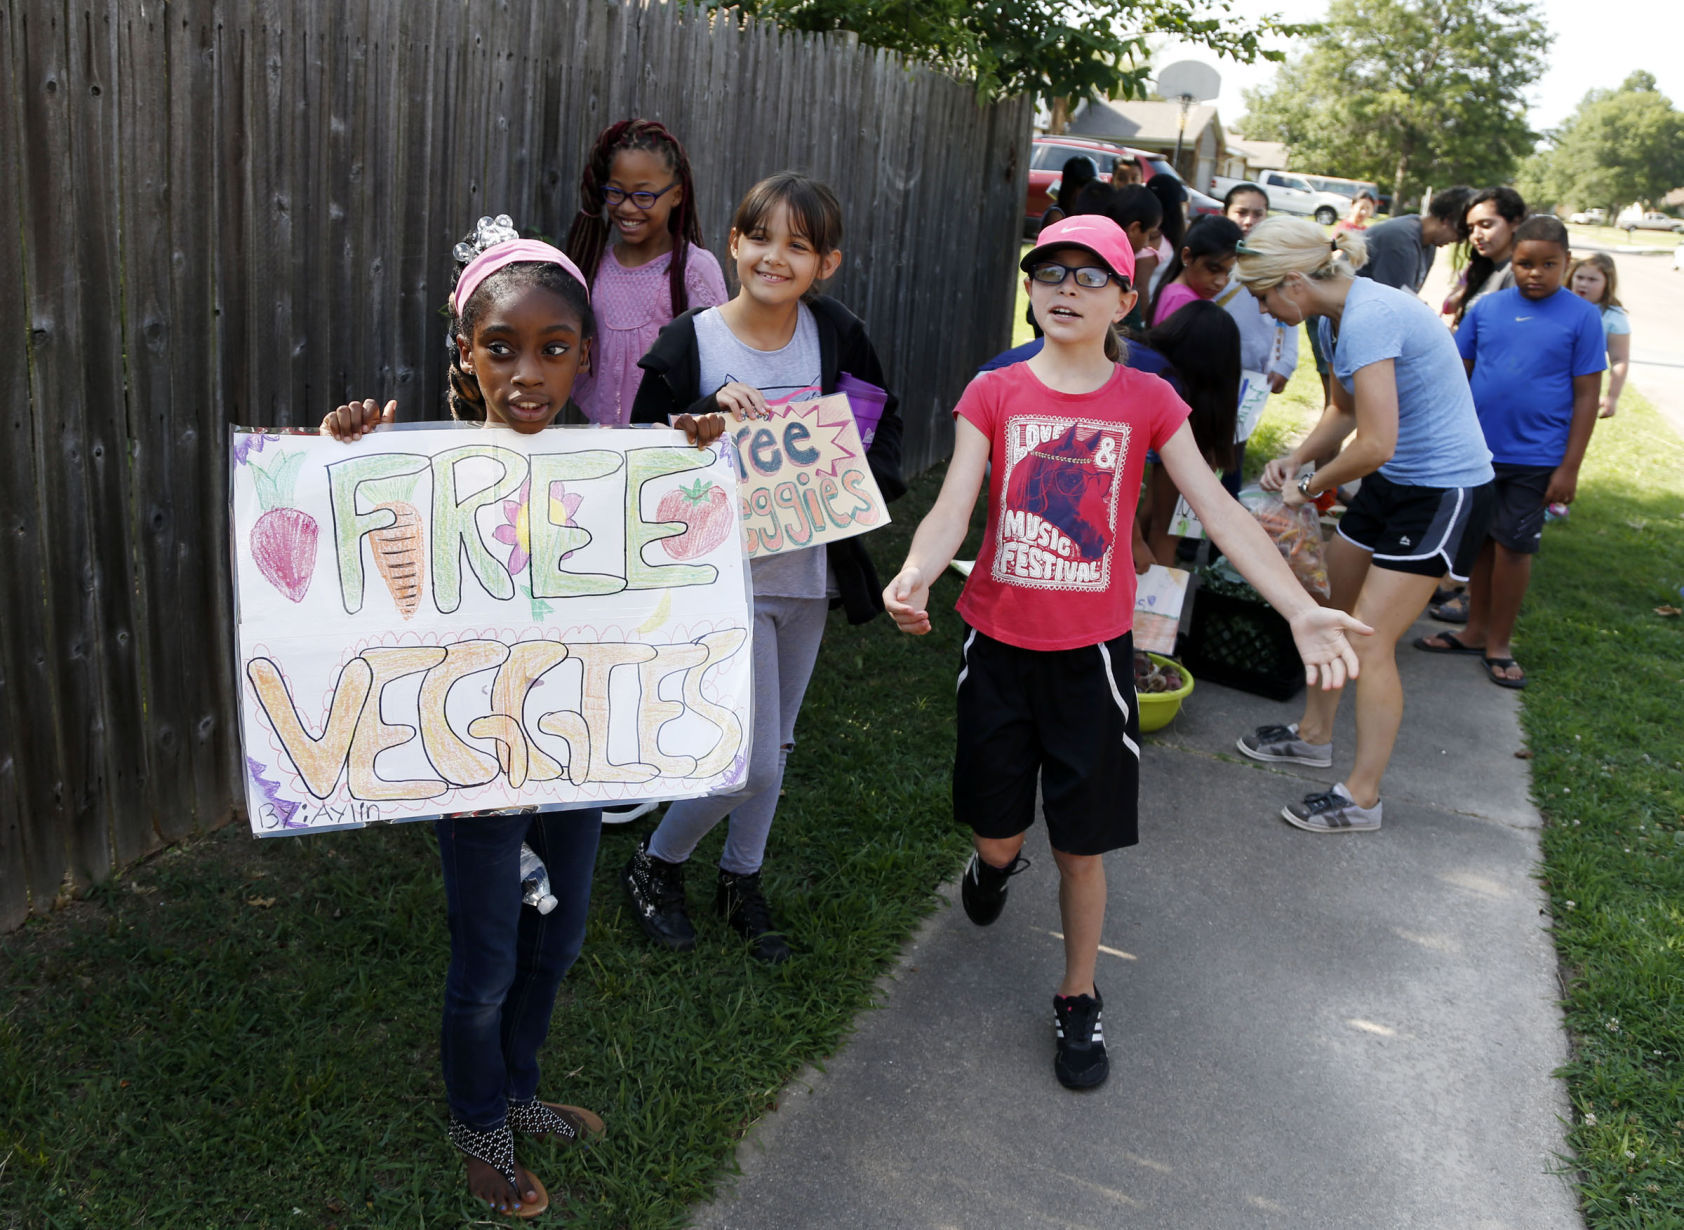 Kids hand out free veggies they grew